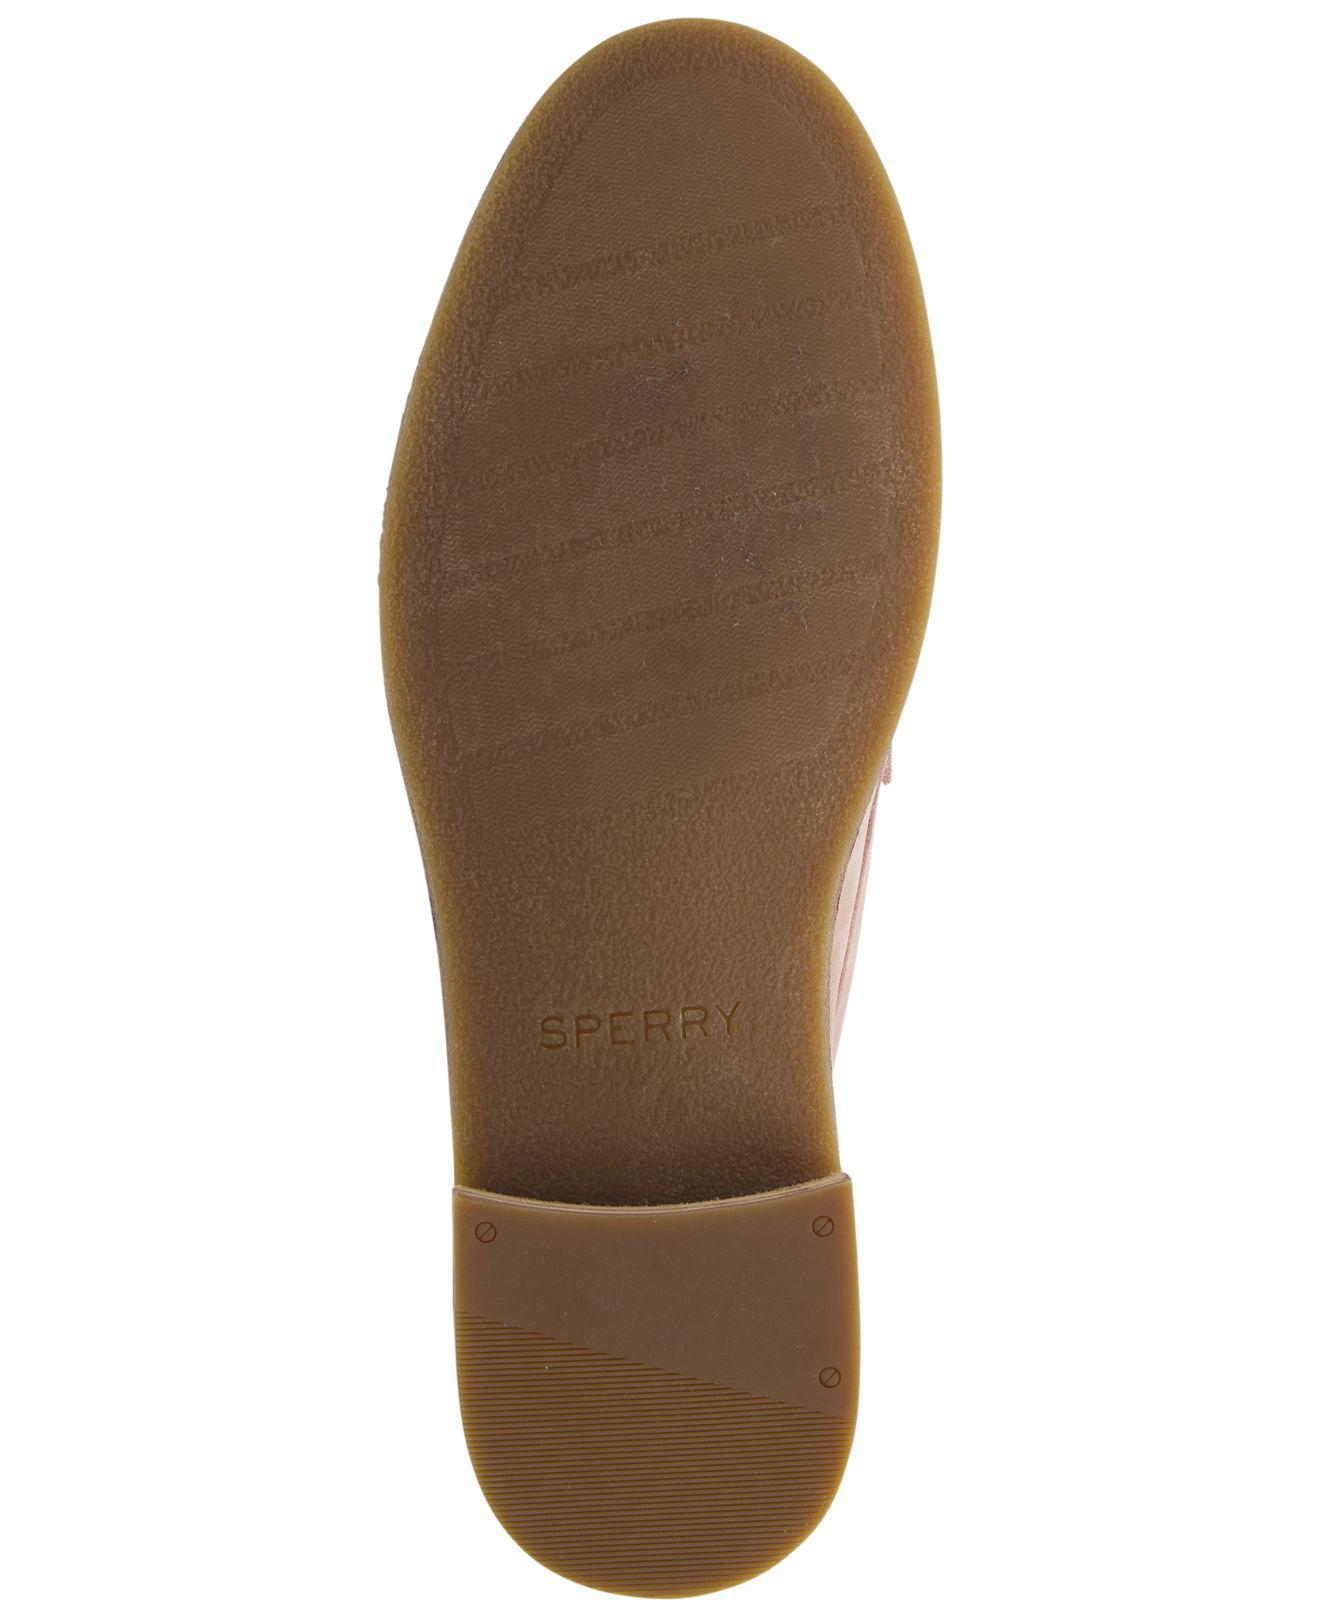 7426d4db2e8287 Sperry Top-Sider - Pink Seaport Penny Memory Foam Loafers - Lyst. View  fullscreen